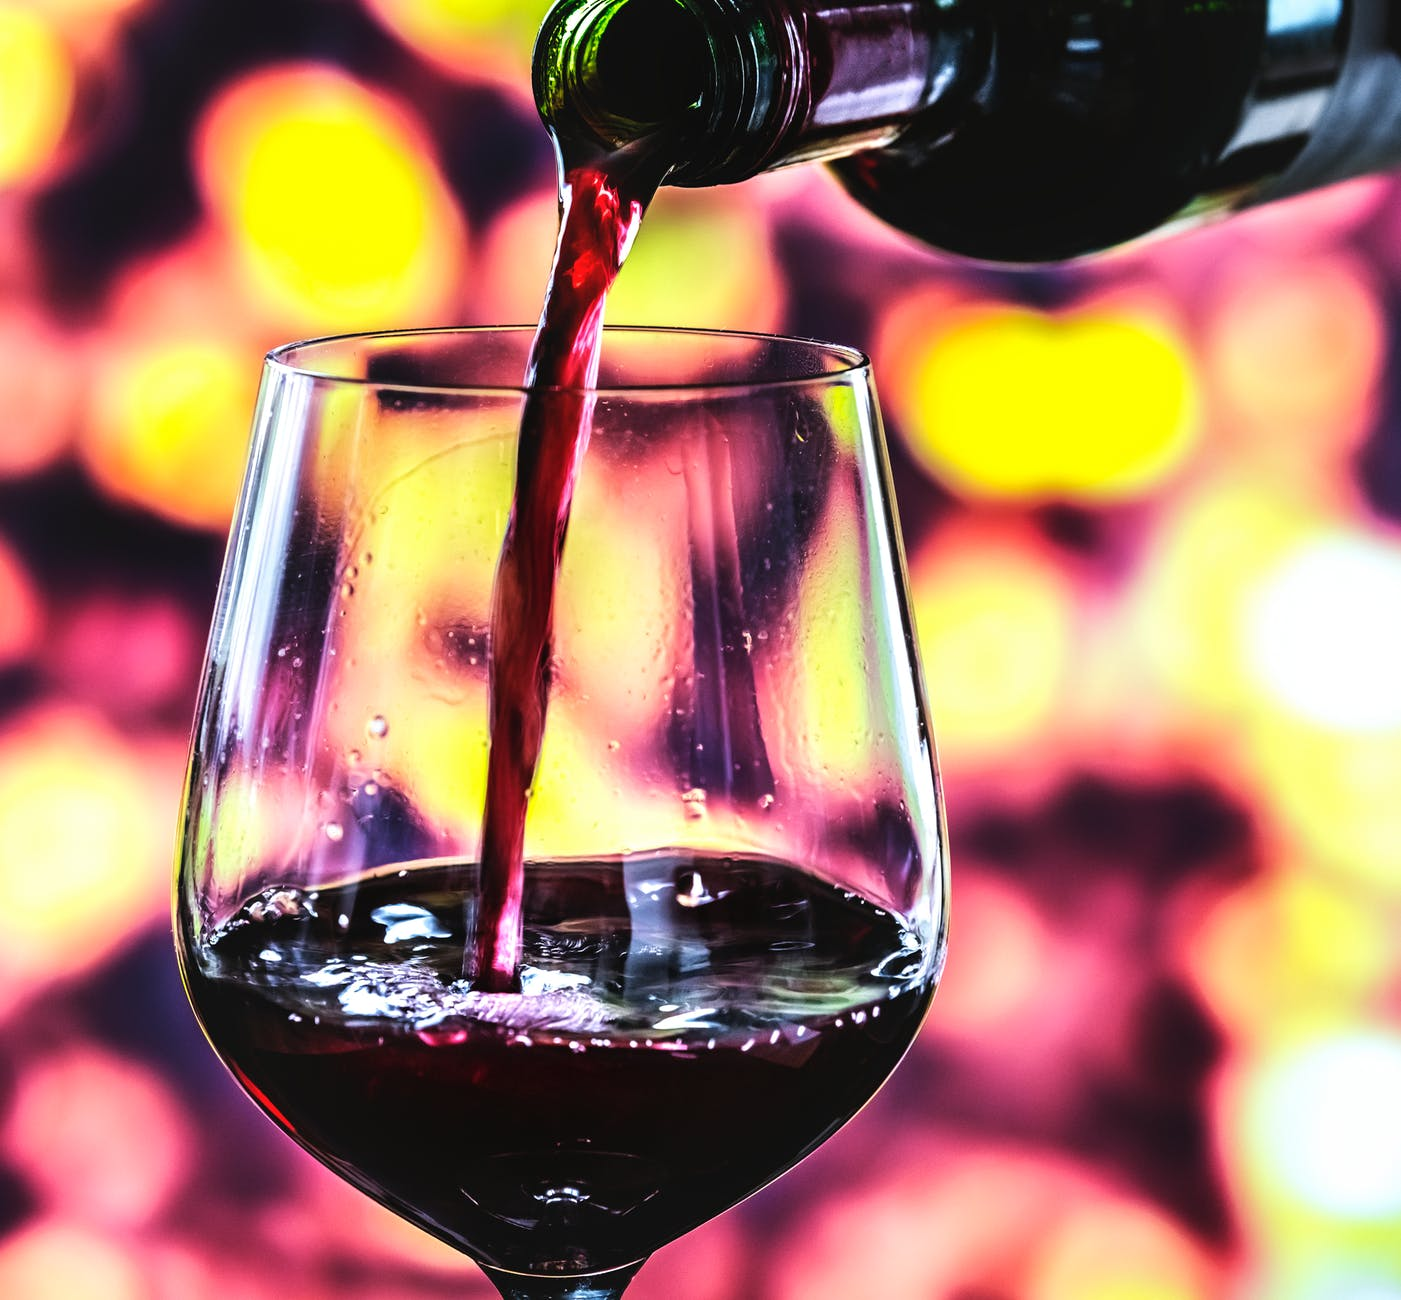 selective focus photography of wine bottle pouring on wine glass